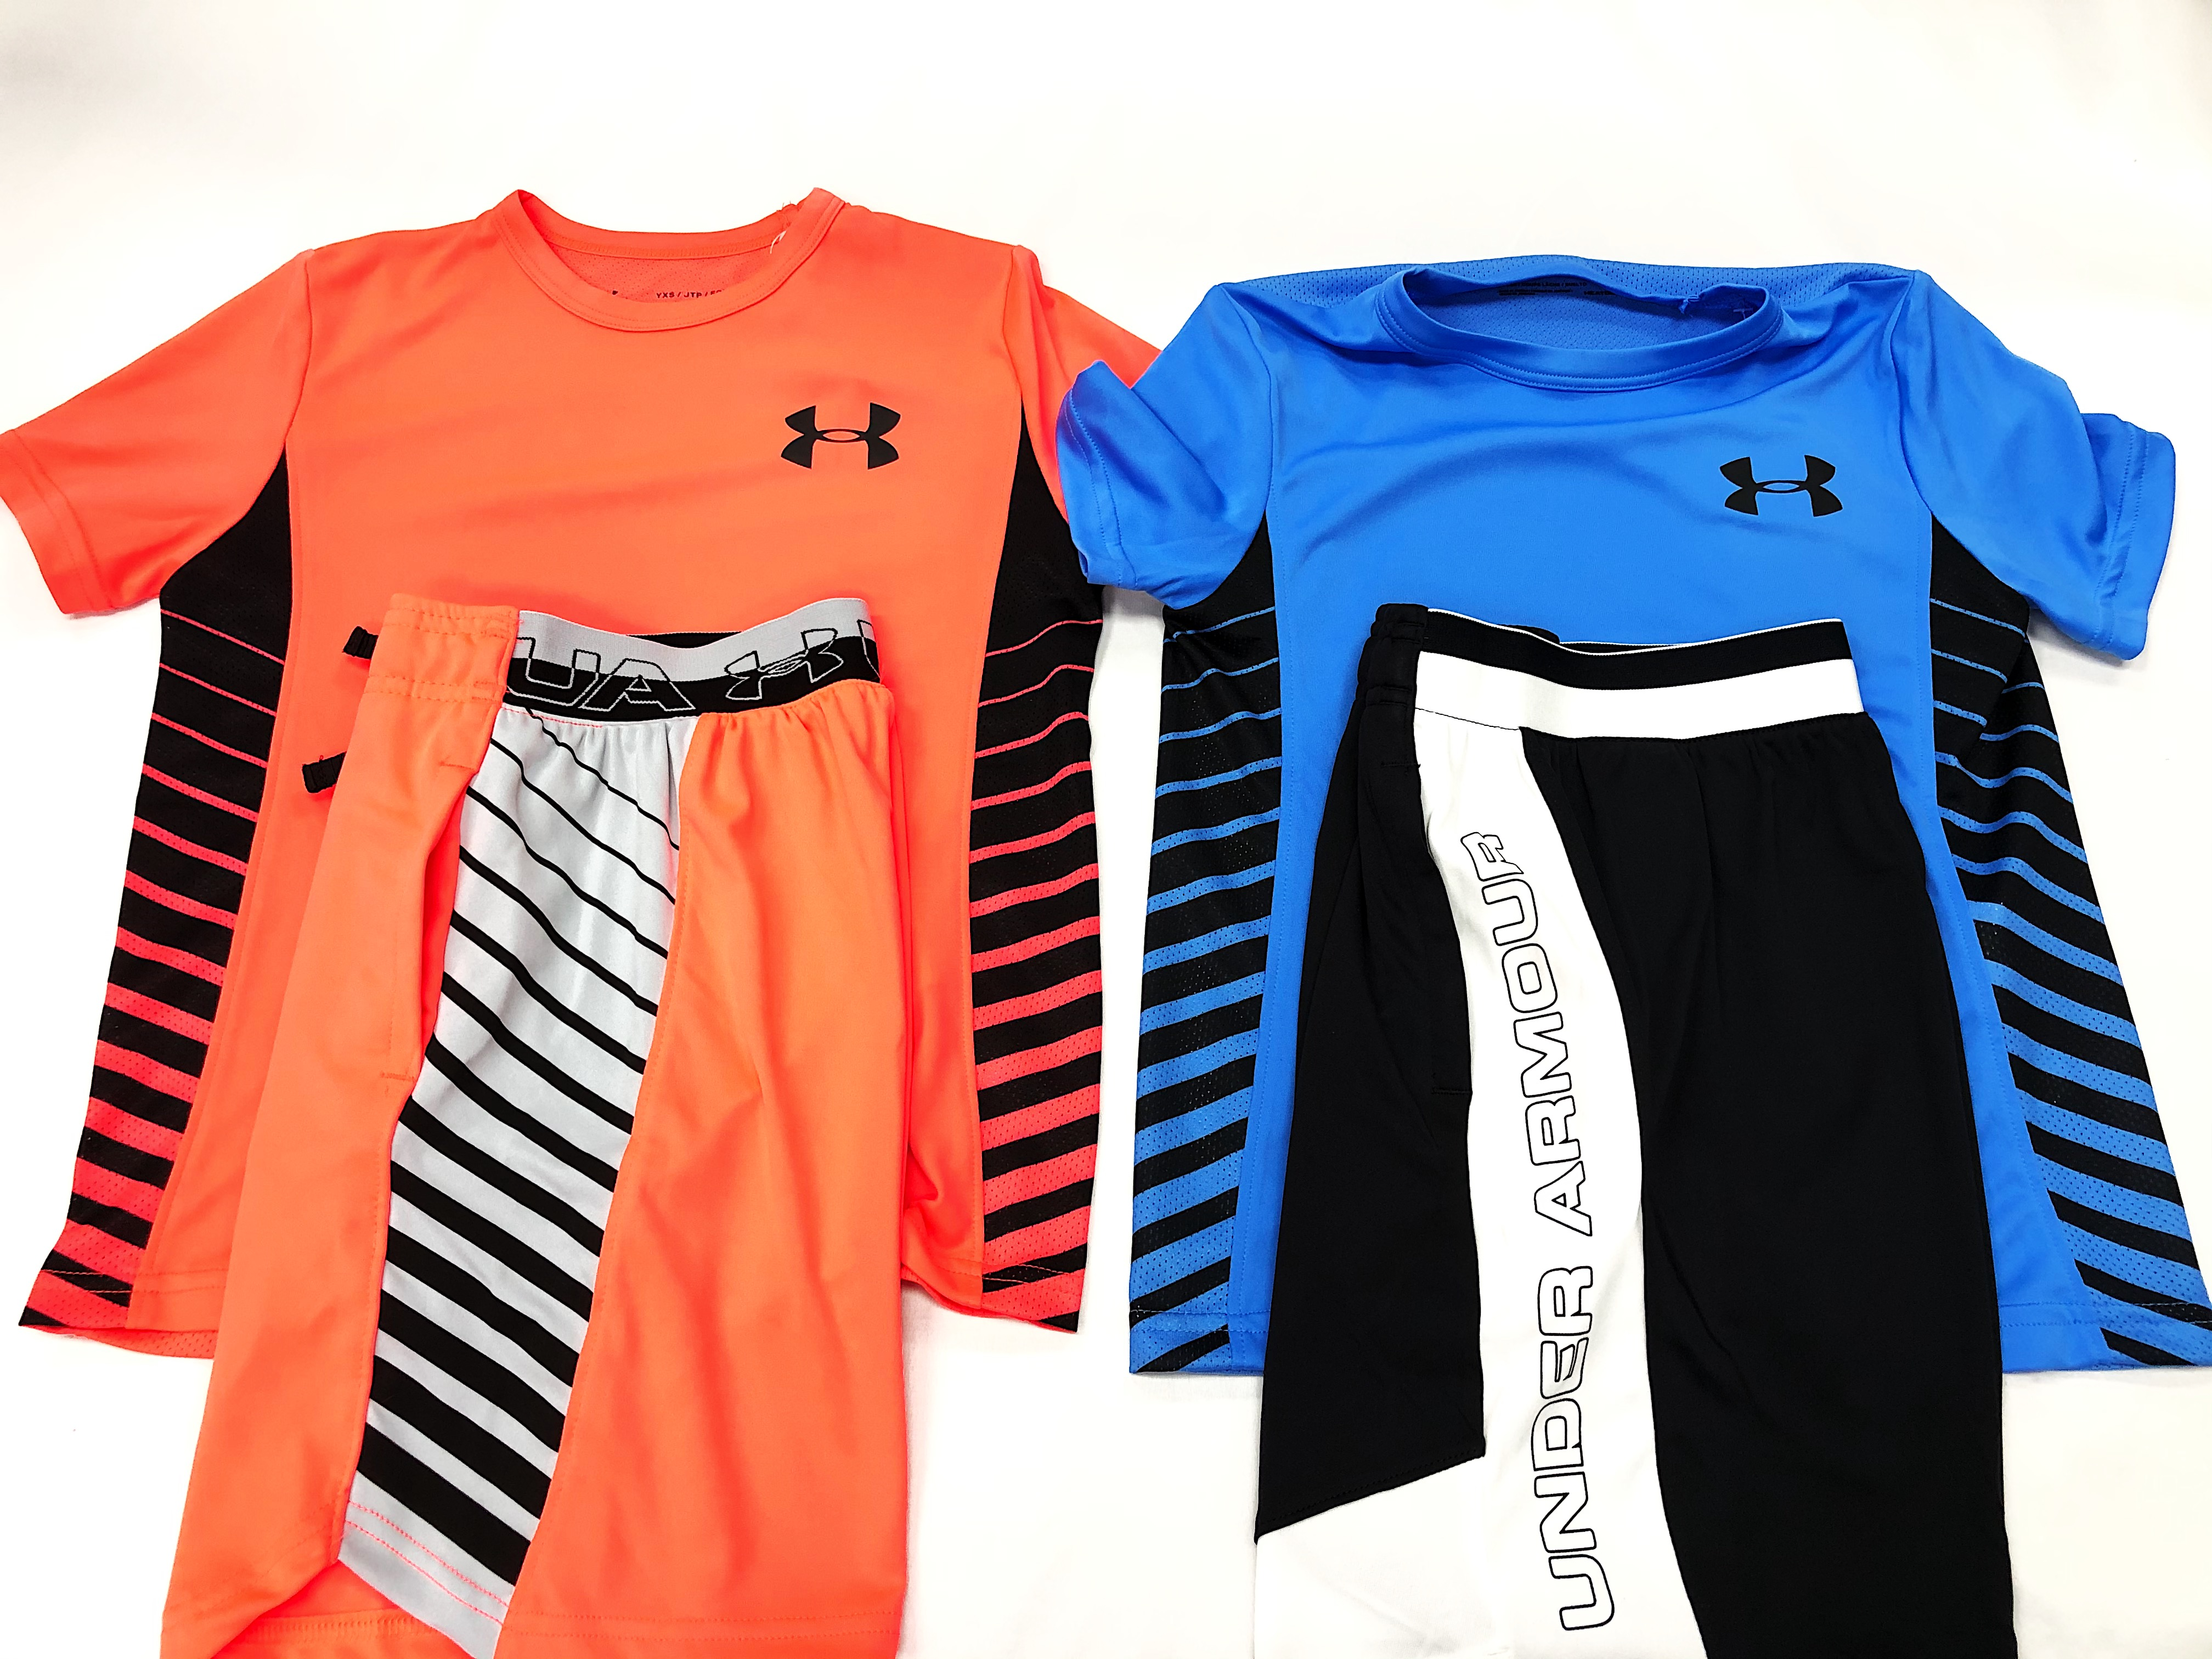 Under Armour Short Sleeves & Shorts